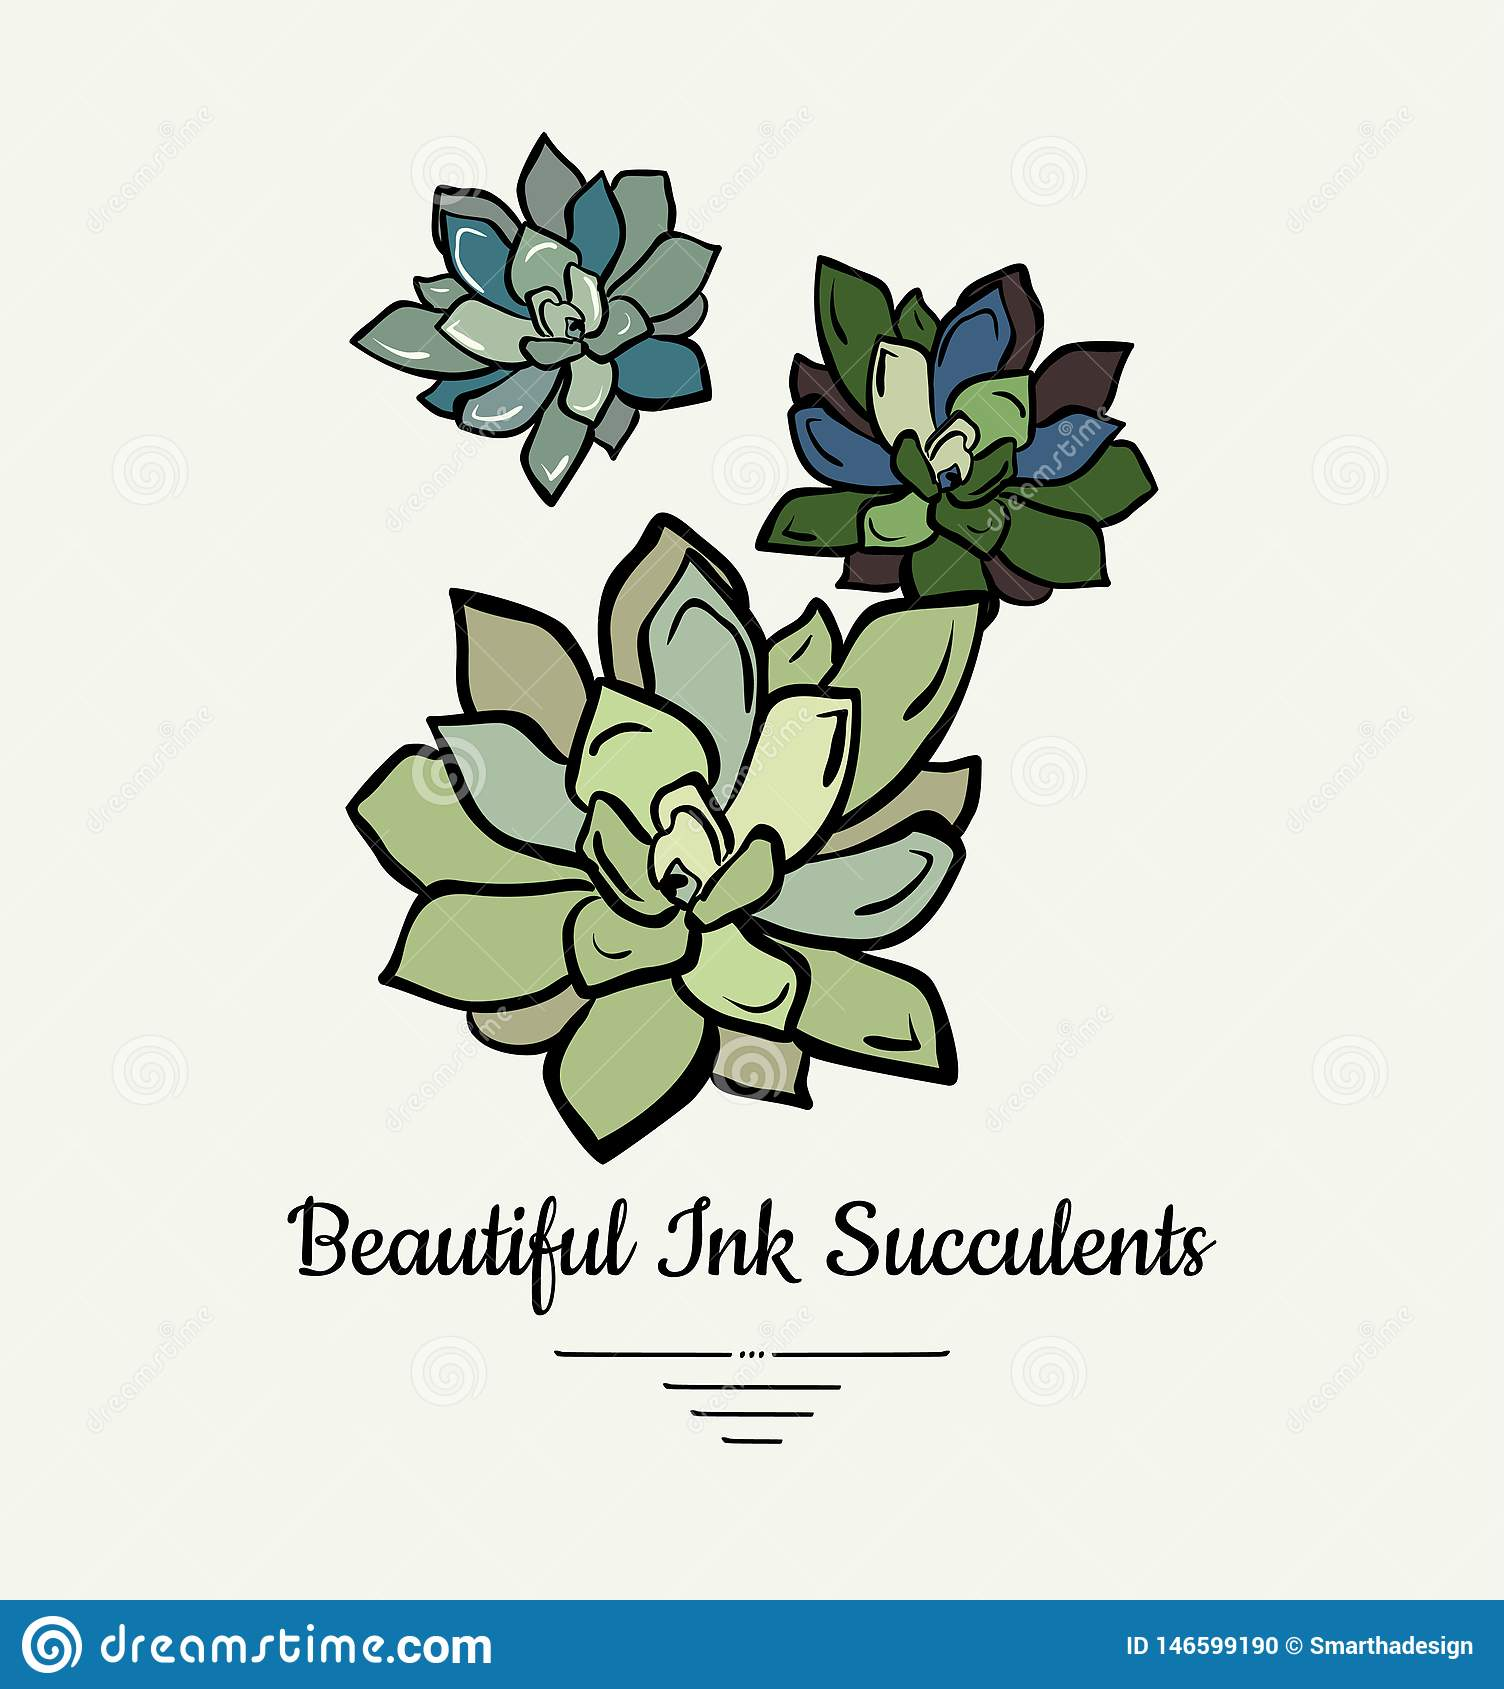 Echeveria hand drawn succulent vector isolated illustration. Modern ink succulent plant logo, icon, poster, banner, postcard.